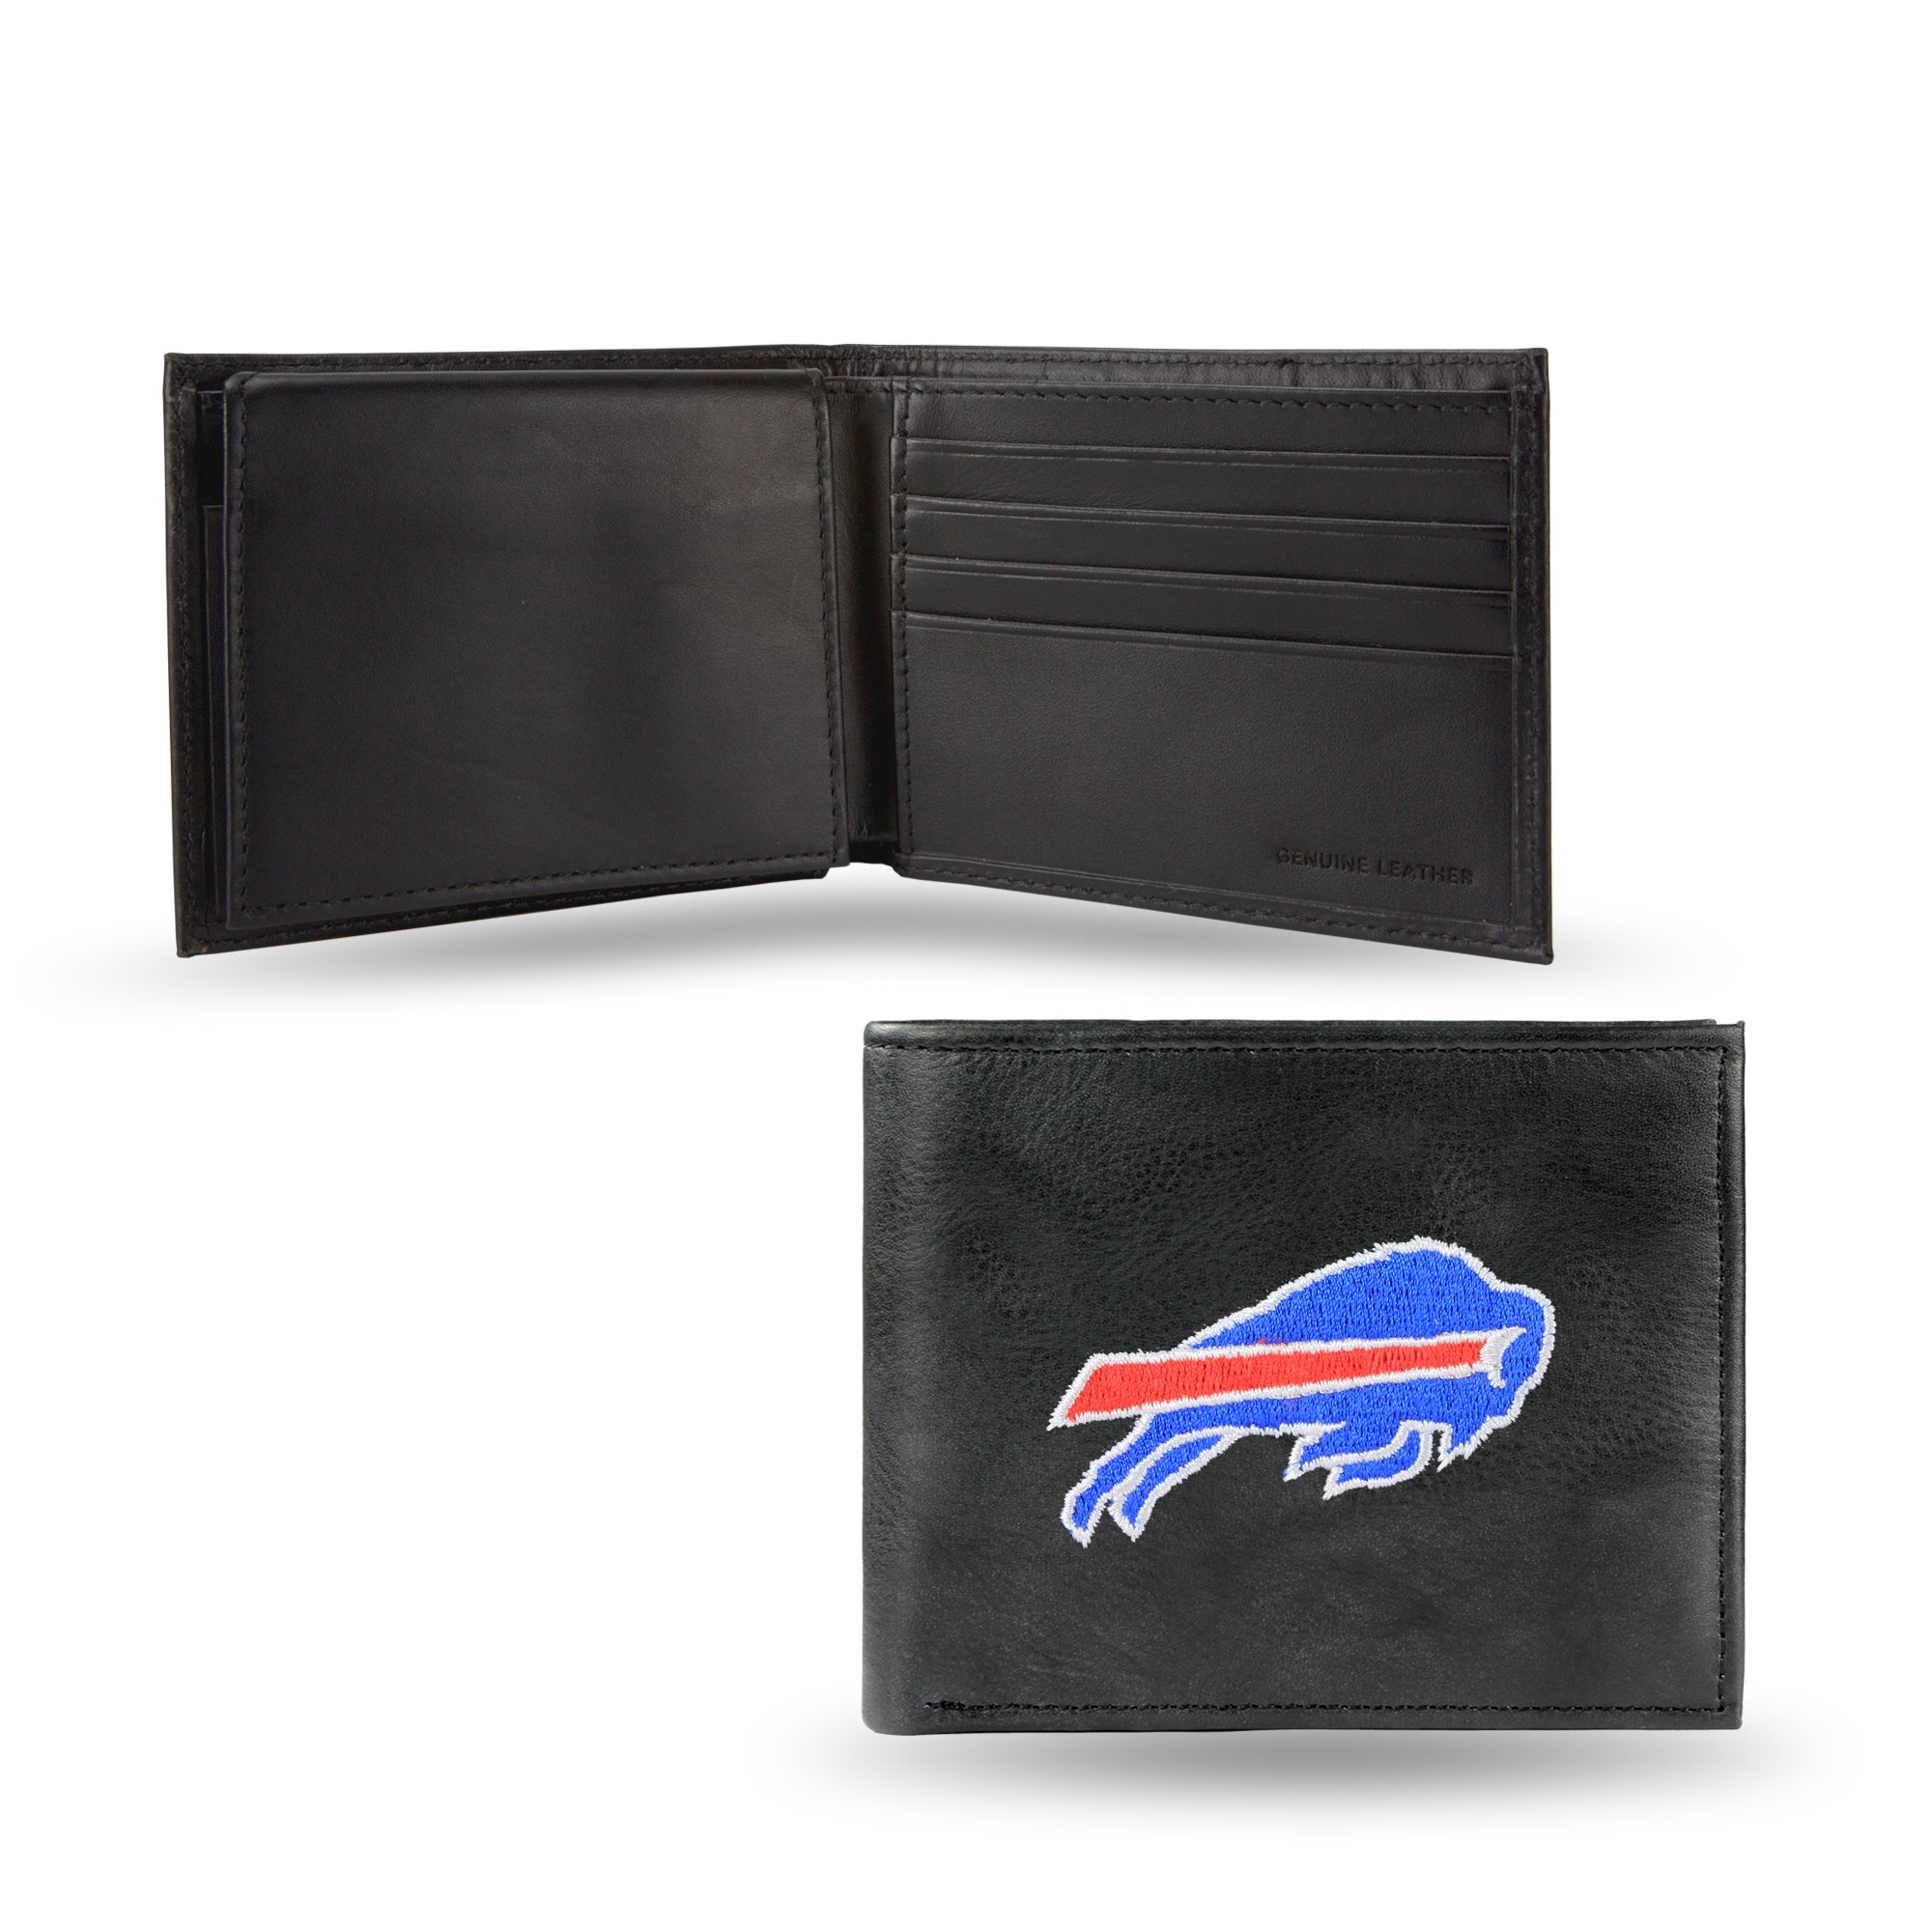 NFL Buffalo Bills Embroidered Leather Billfold Wallet